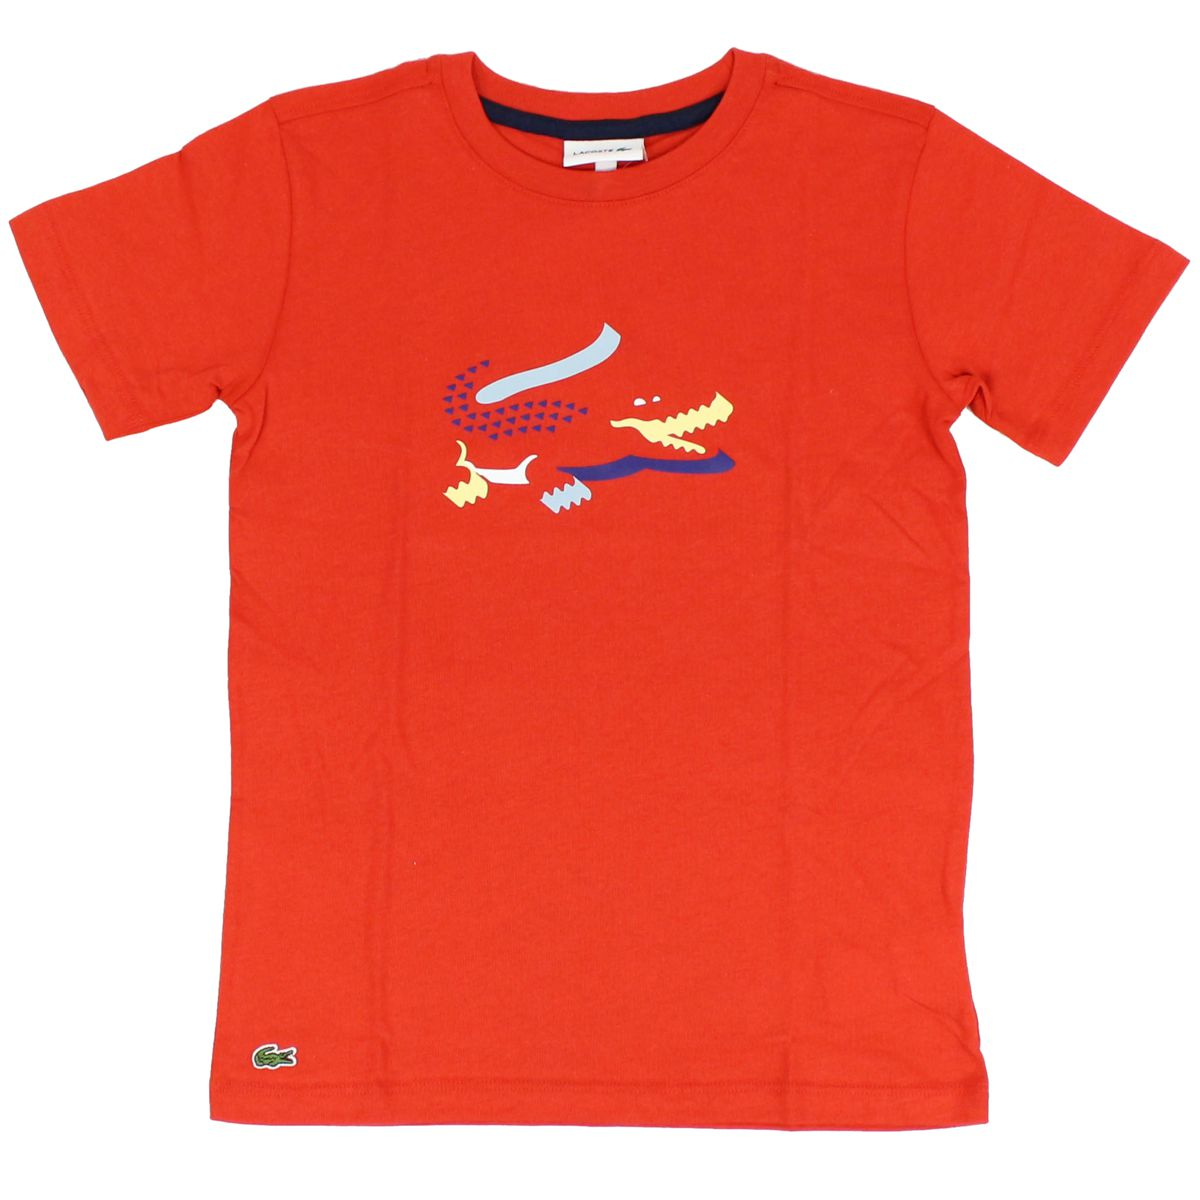 Crocodile print cotton t-shirt Red Lacoste